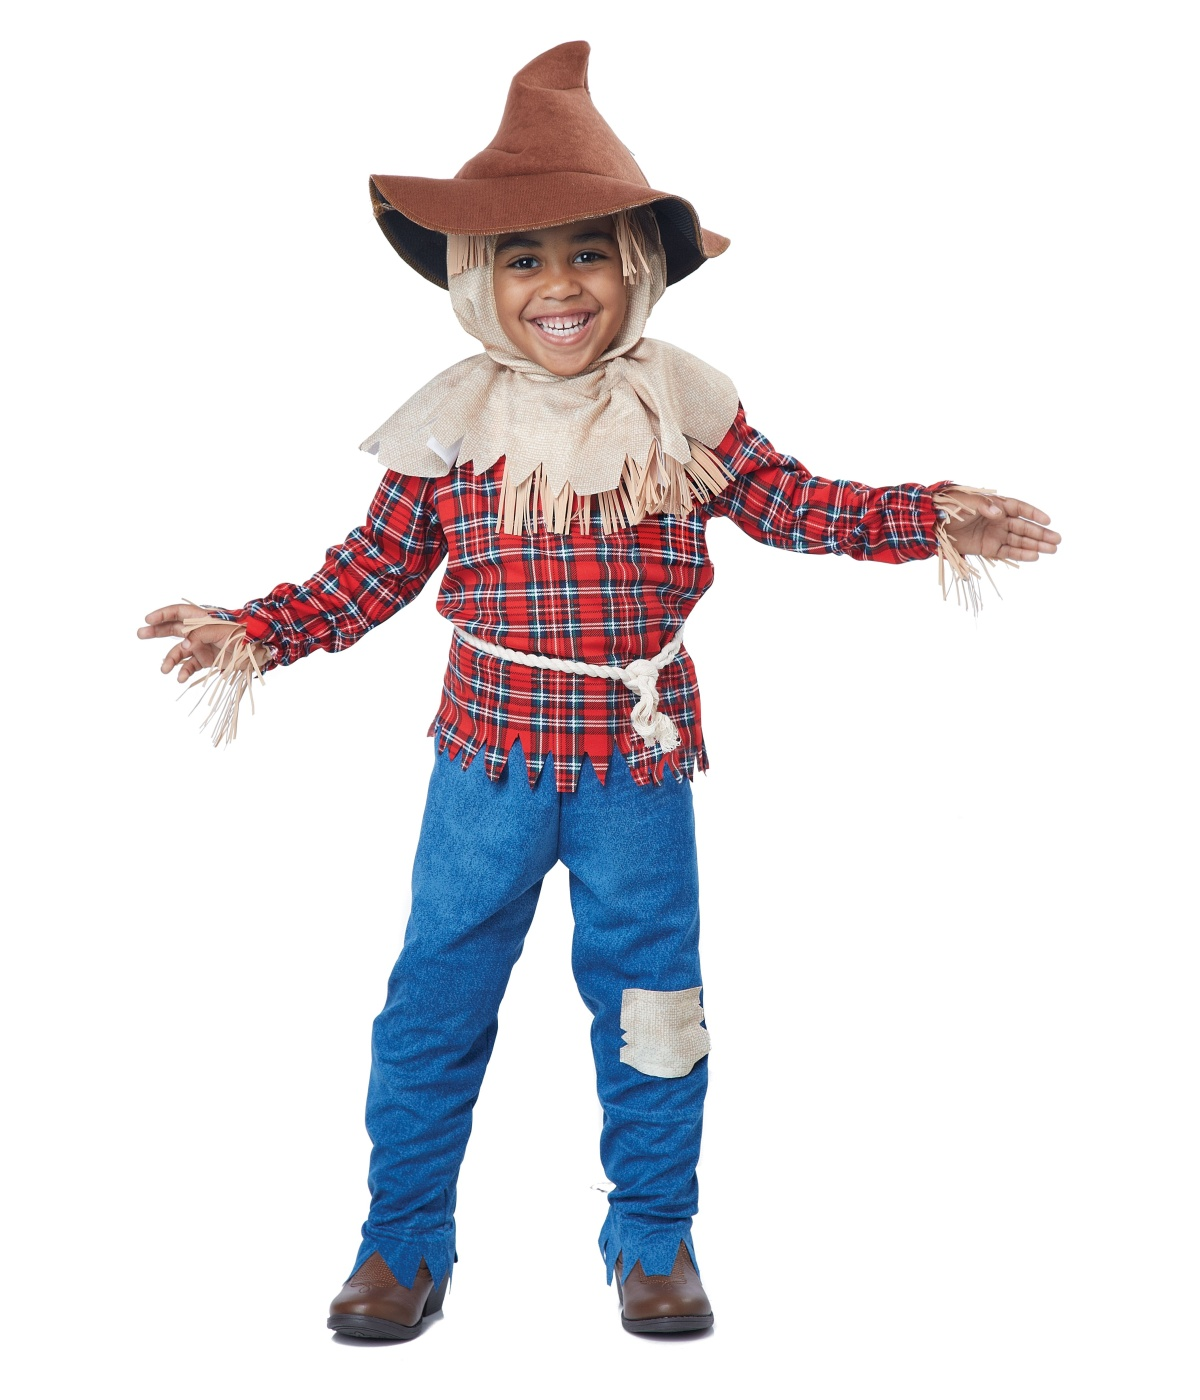 Scarecrow Costumes Amp Scarecrow Costume Accessories For